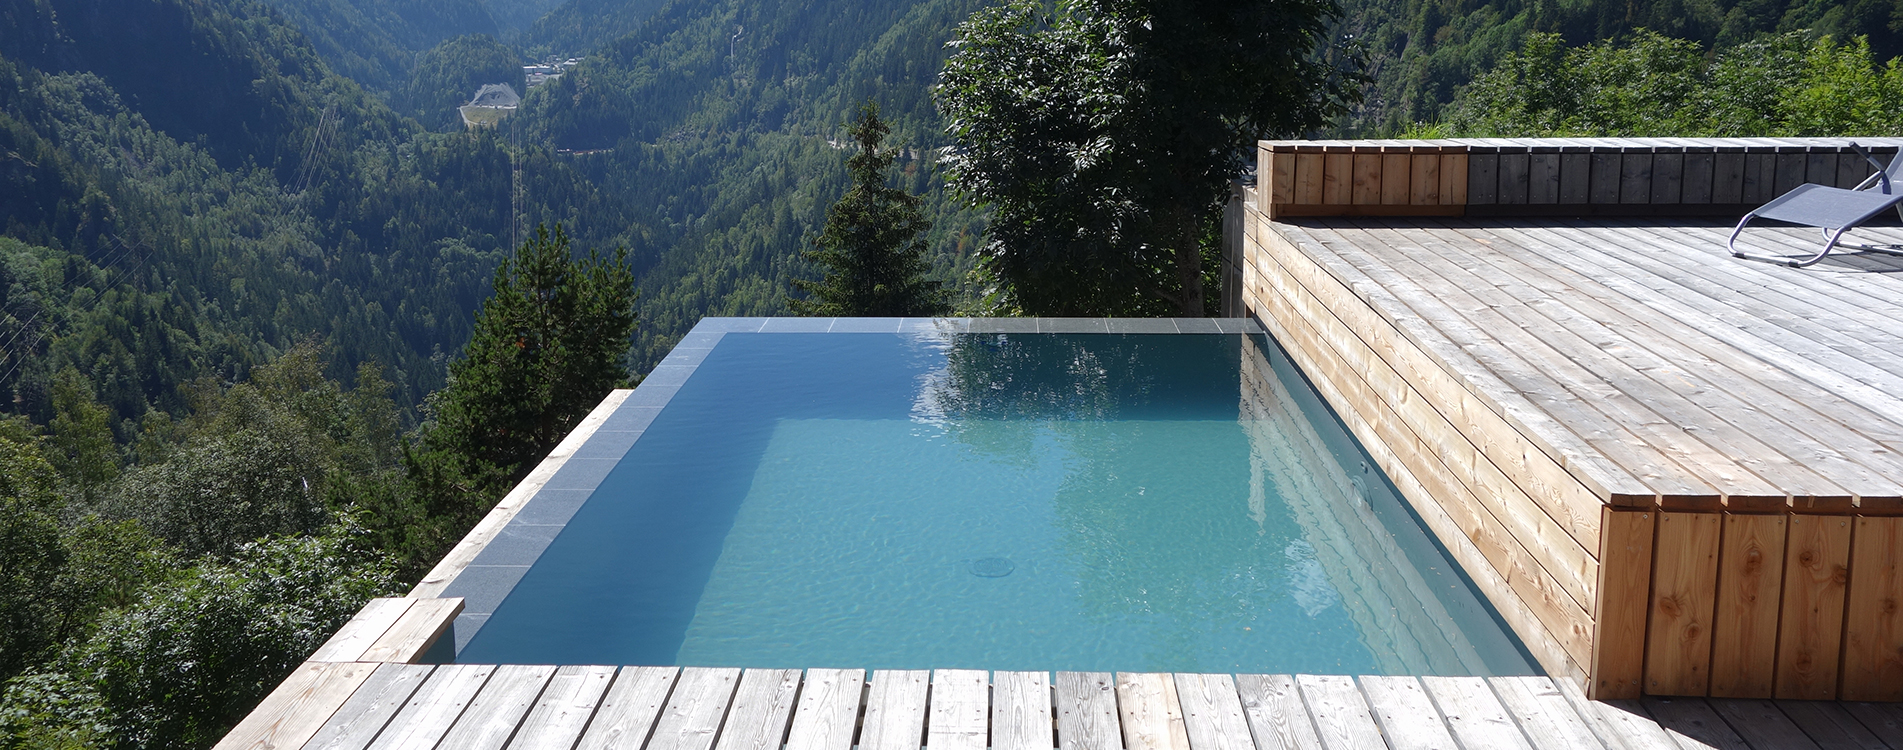 Construction piscine d bordement miroir suisse for Construction piscine